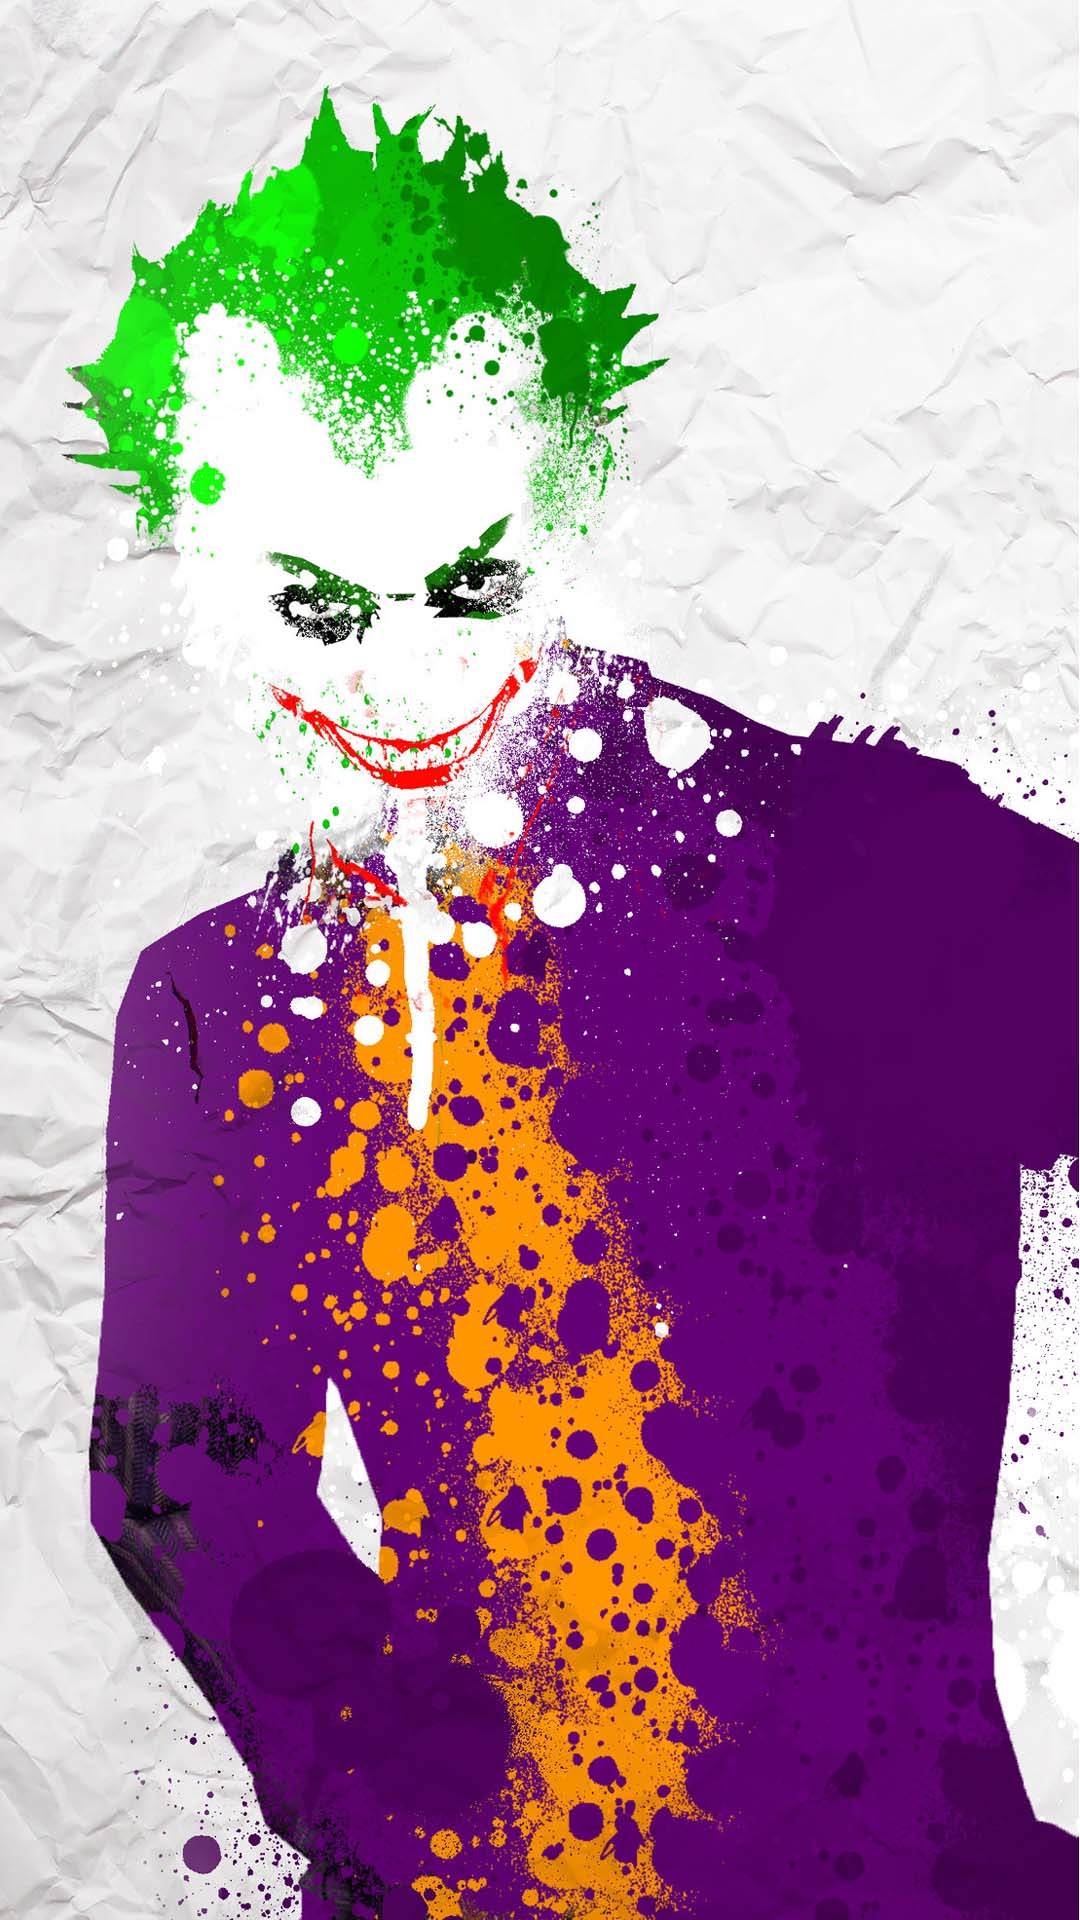 Girly Phone Wallpapers Quotes Joker Splatter Funny Colors